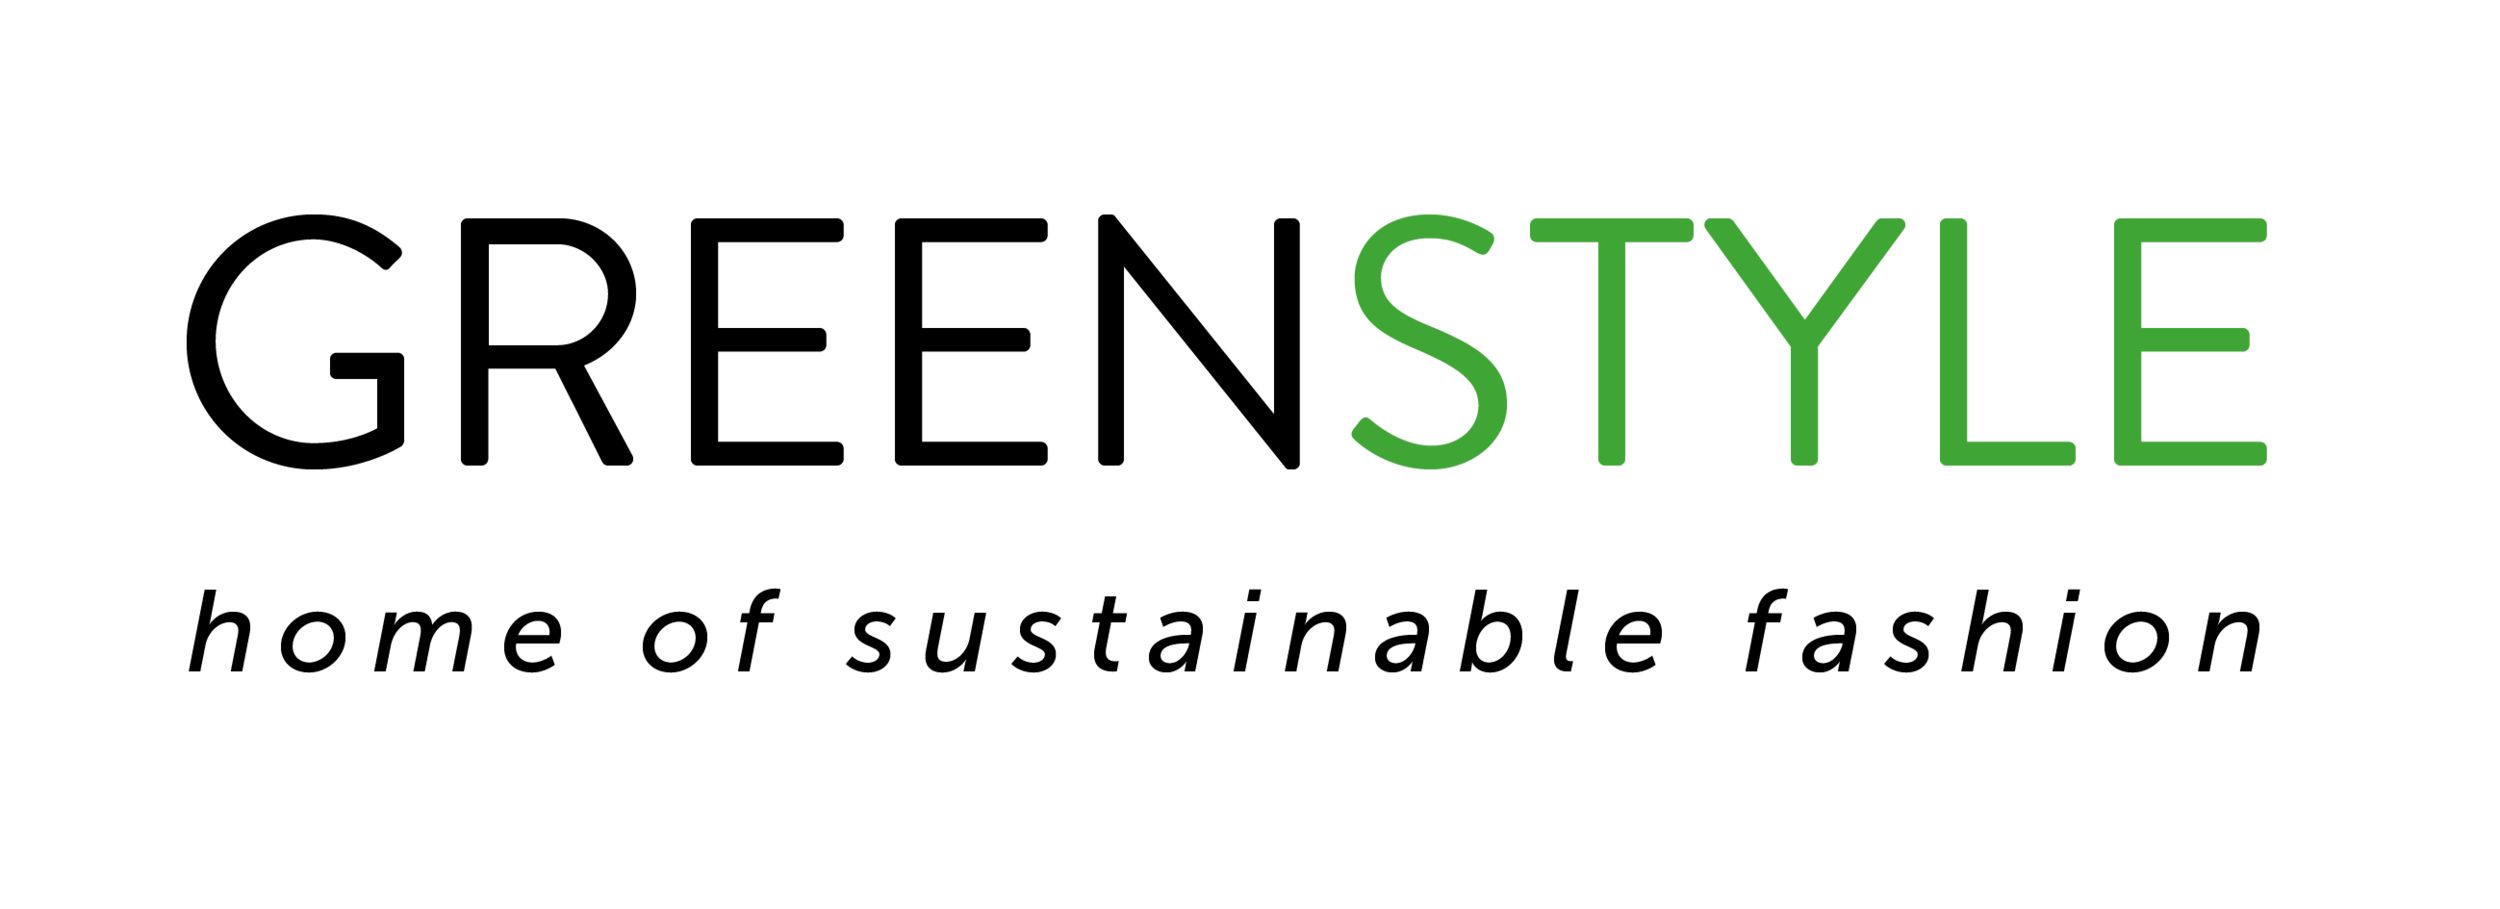 Greenstyle_Logo.png